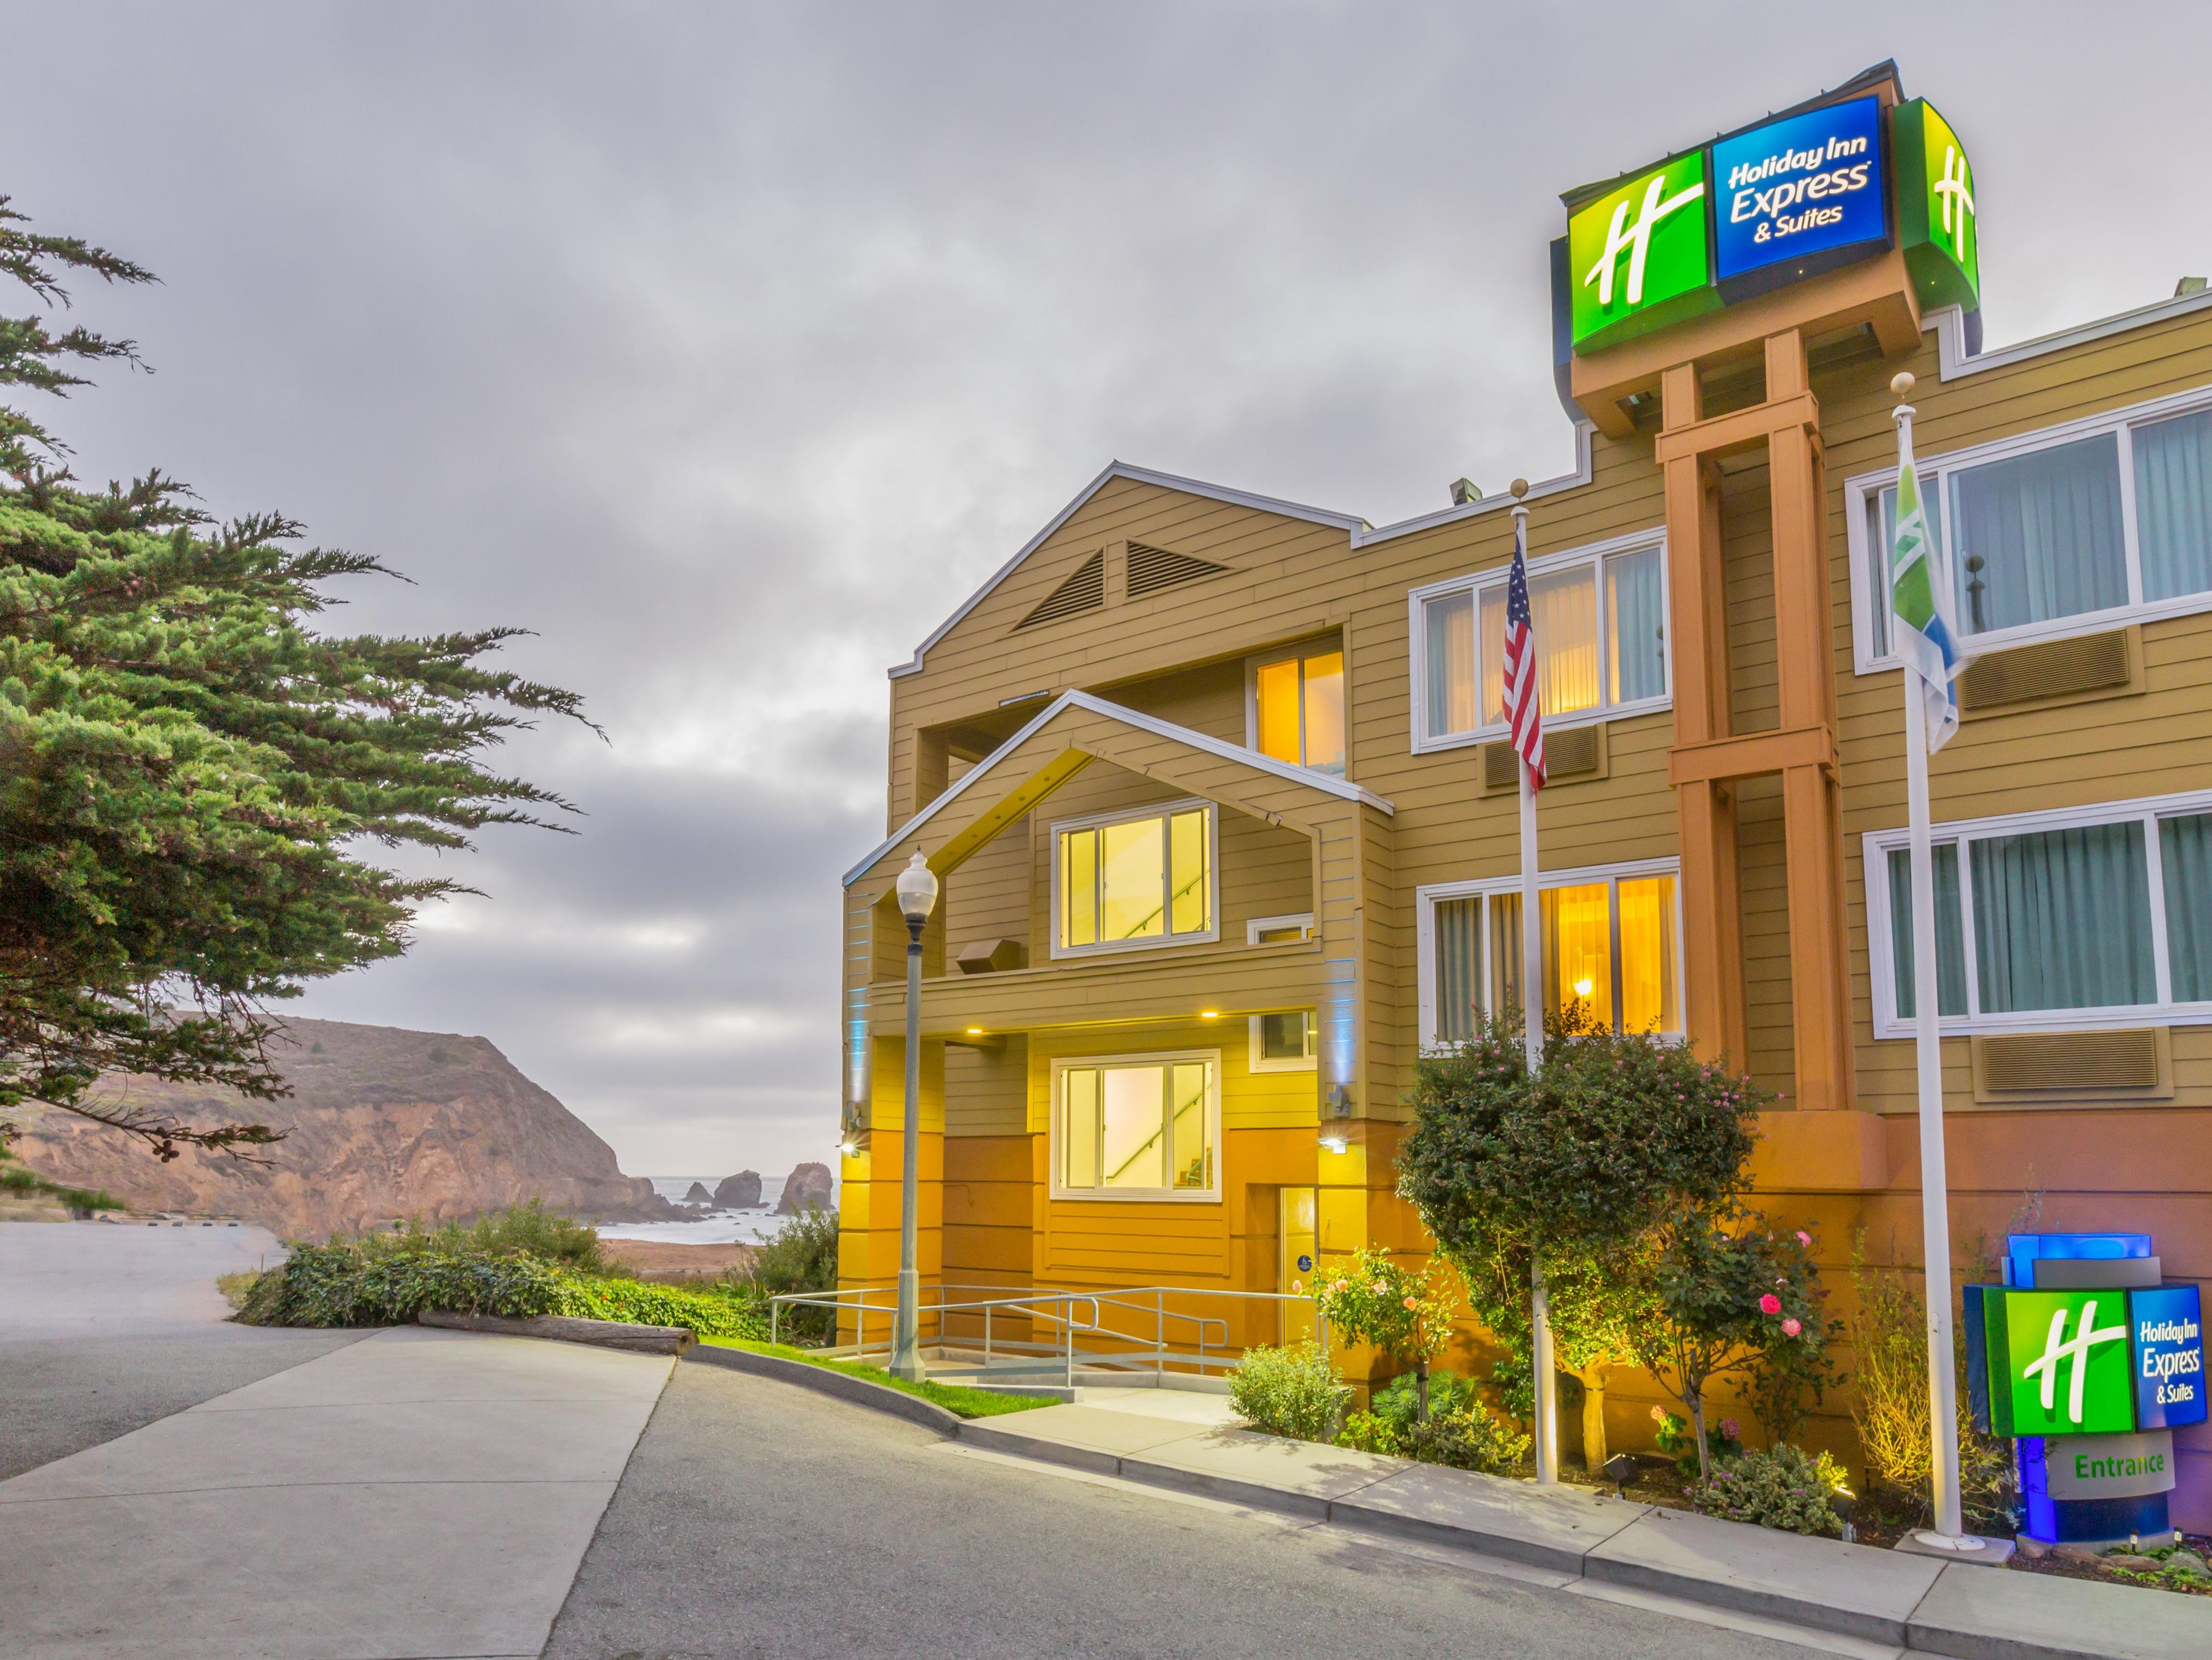 Holiday Inn Express Pacifica Evening Exterior